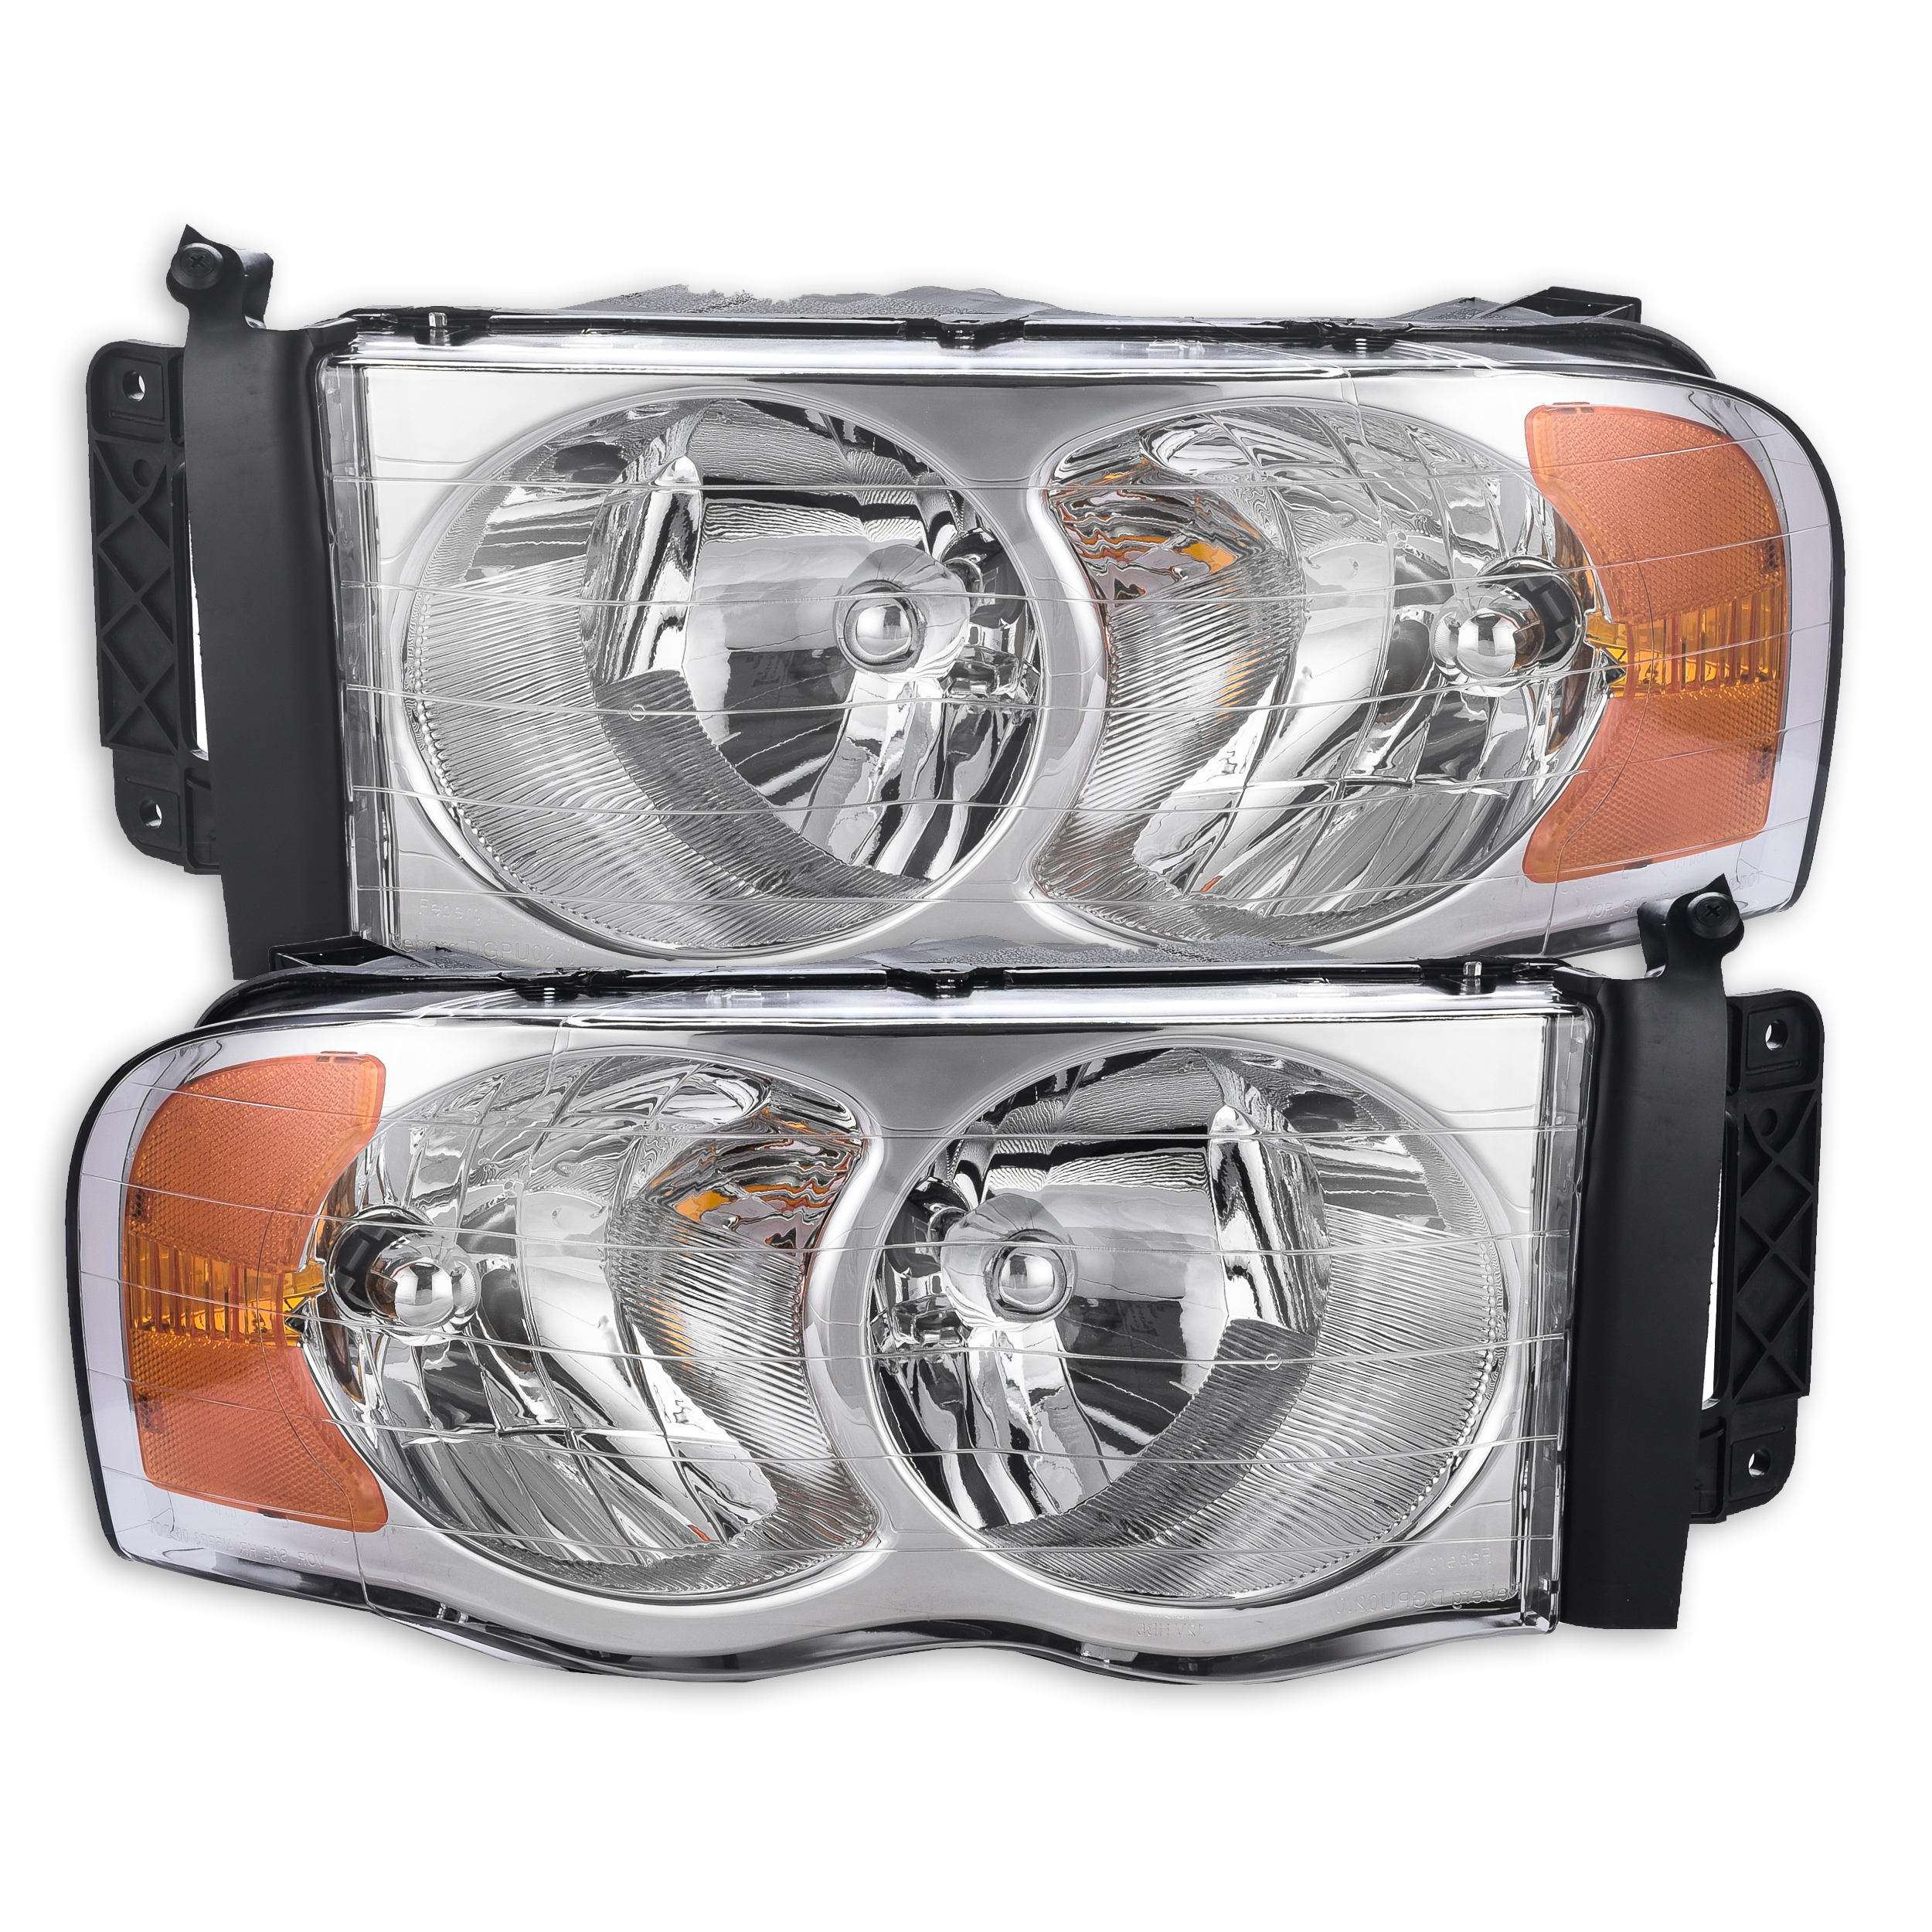 Fits 2002-2005 Dodge Ram 1500 Driver and Passenger Side Headlamp Assembly